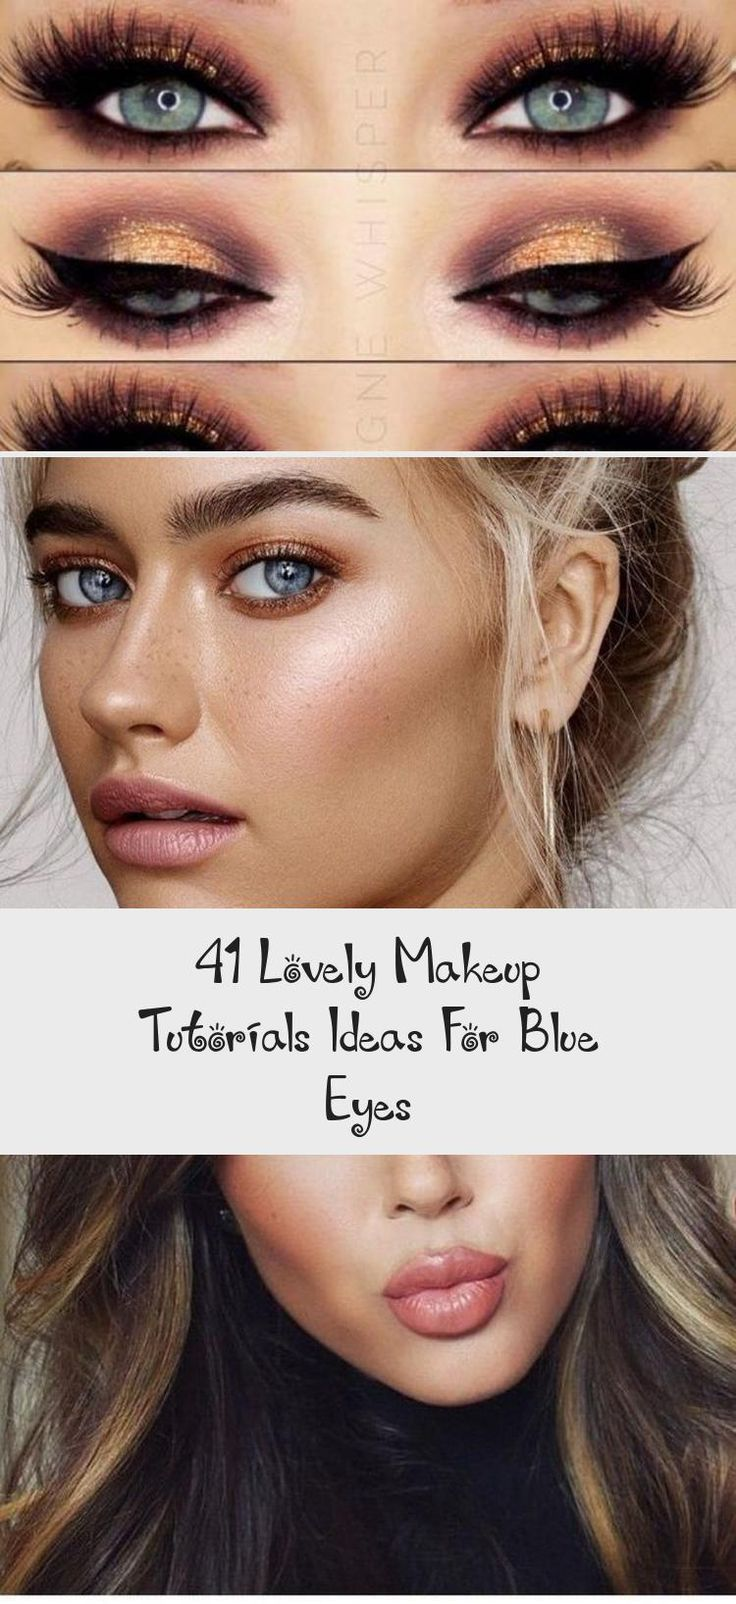 41 Lovely Makeup Tutorials Ideas For Blue Eyes Sky's